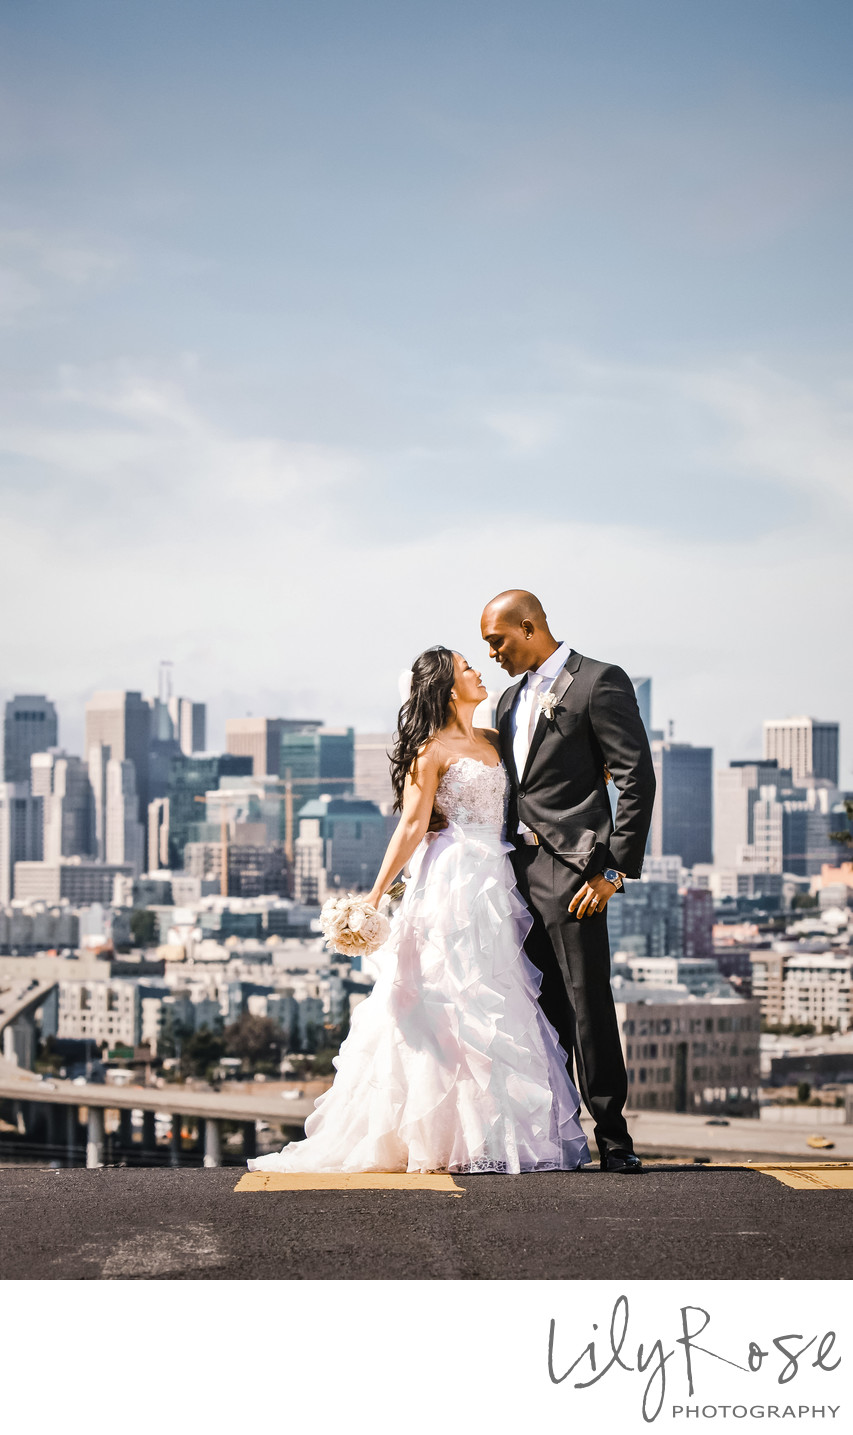 Best Wedding Photos in San Francisco